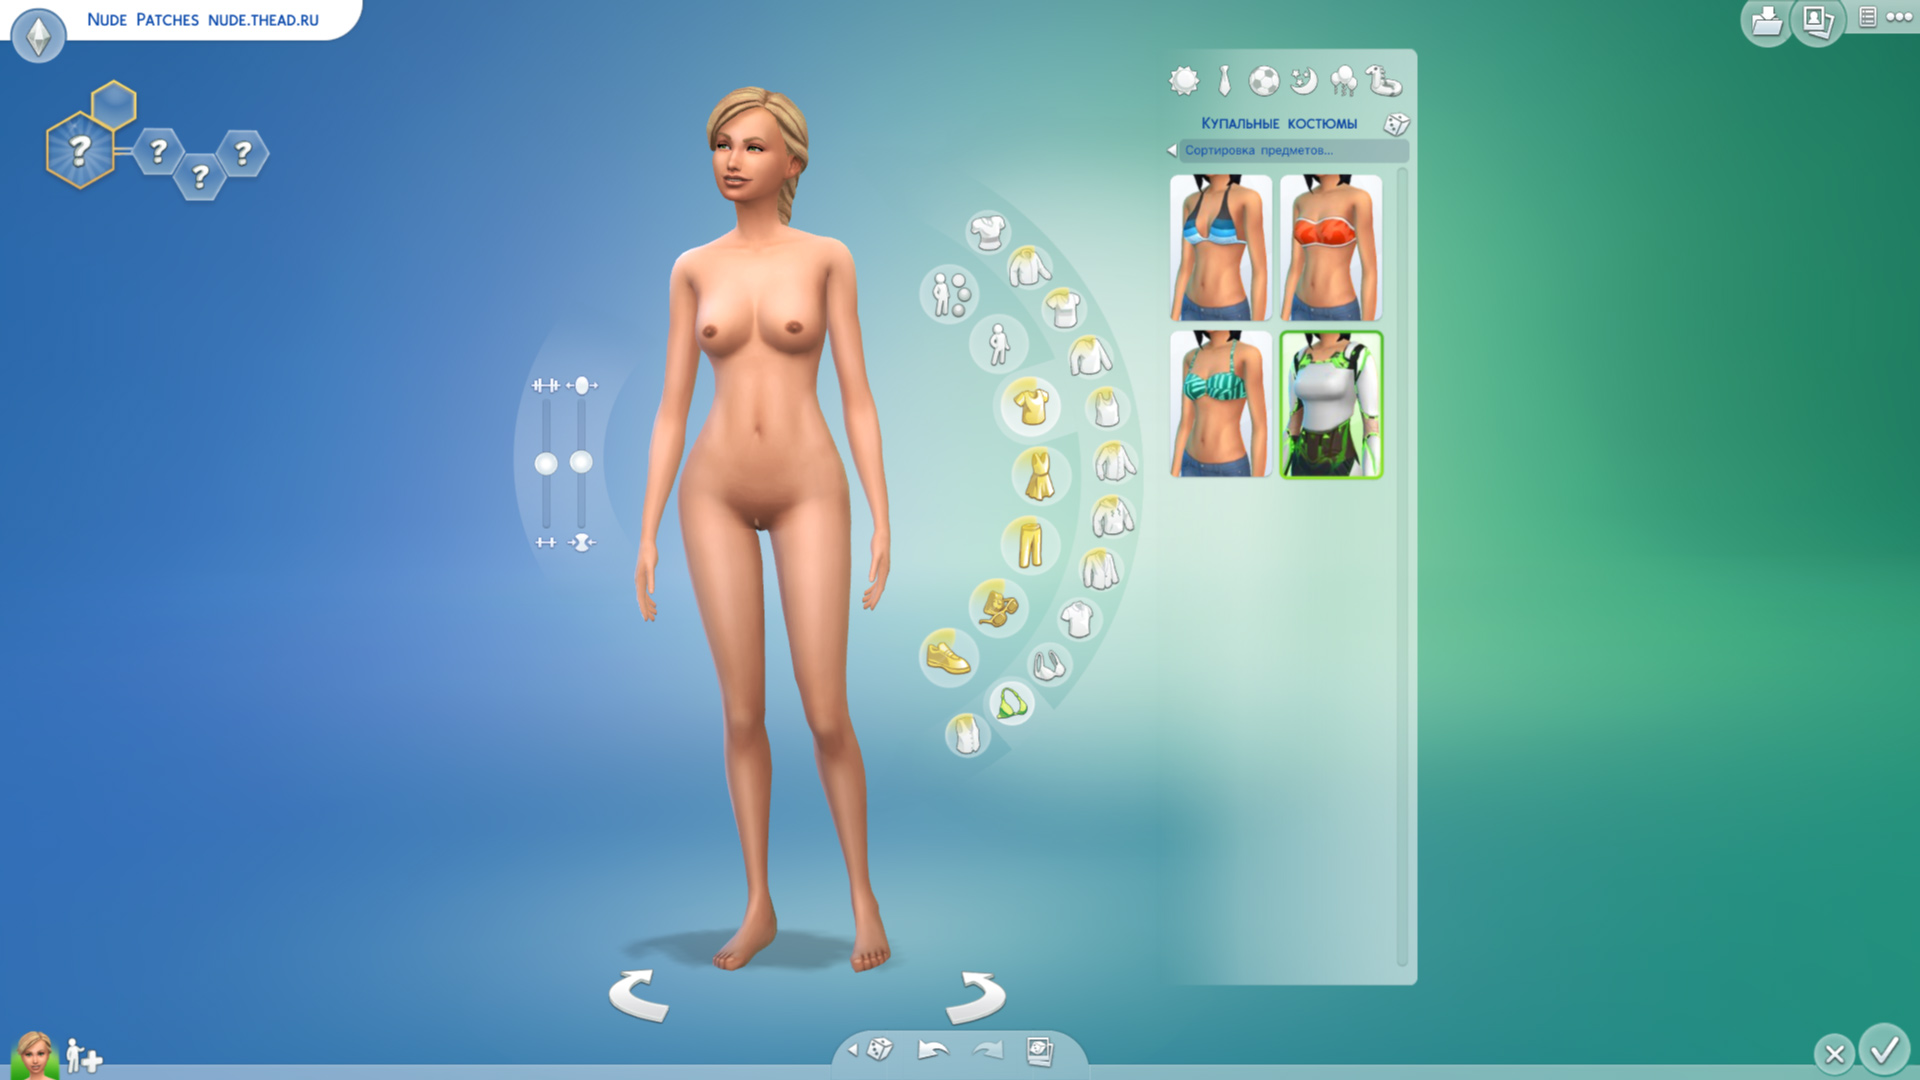 Sims 2 nude patch download nude bitch